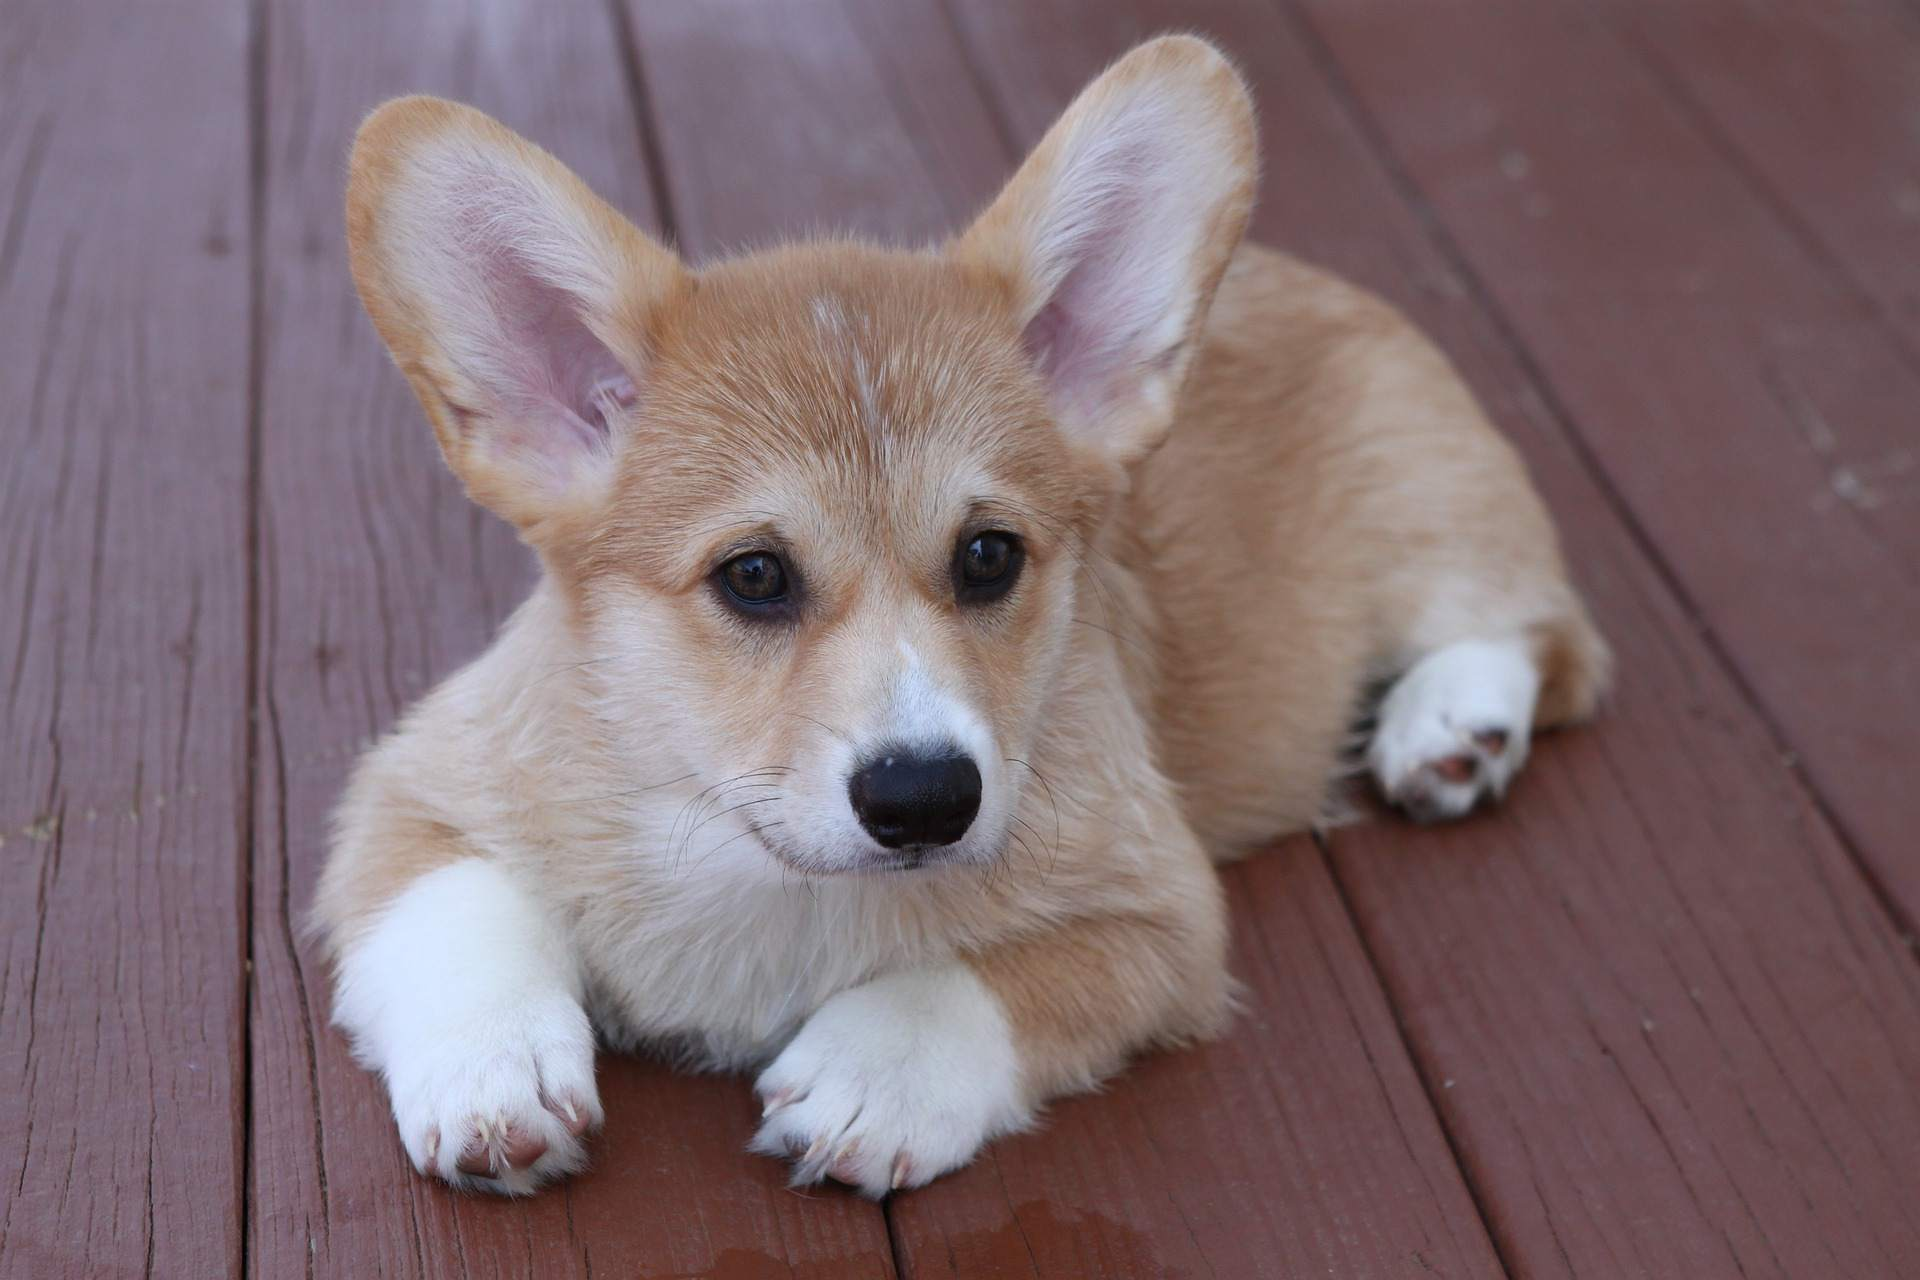 A Corgi puppy looking off into the distance.